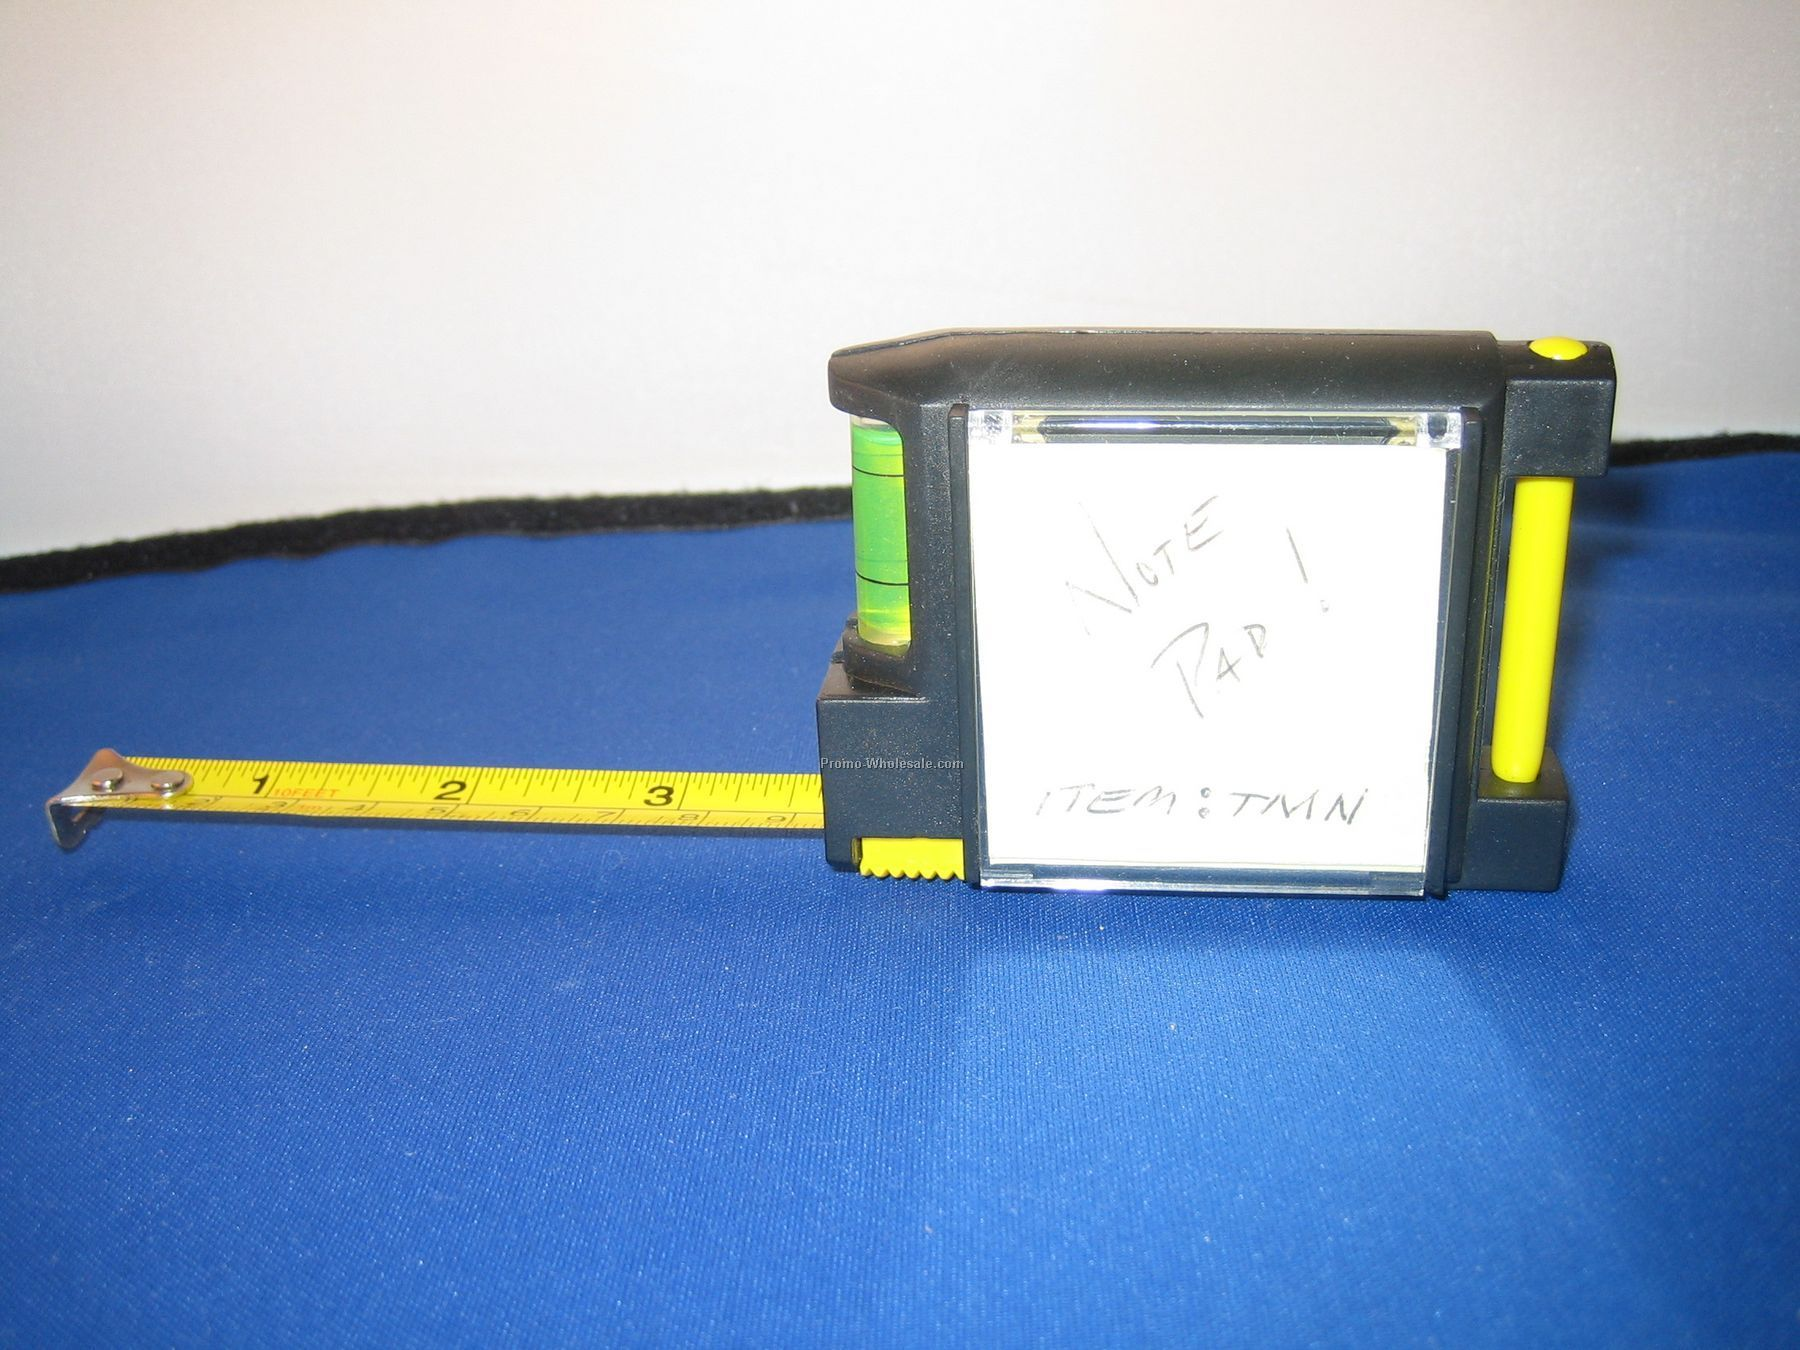 10' Tape Measure / Level With Notepad & Pen